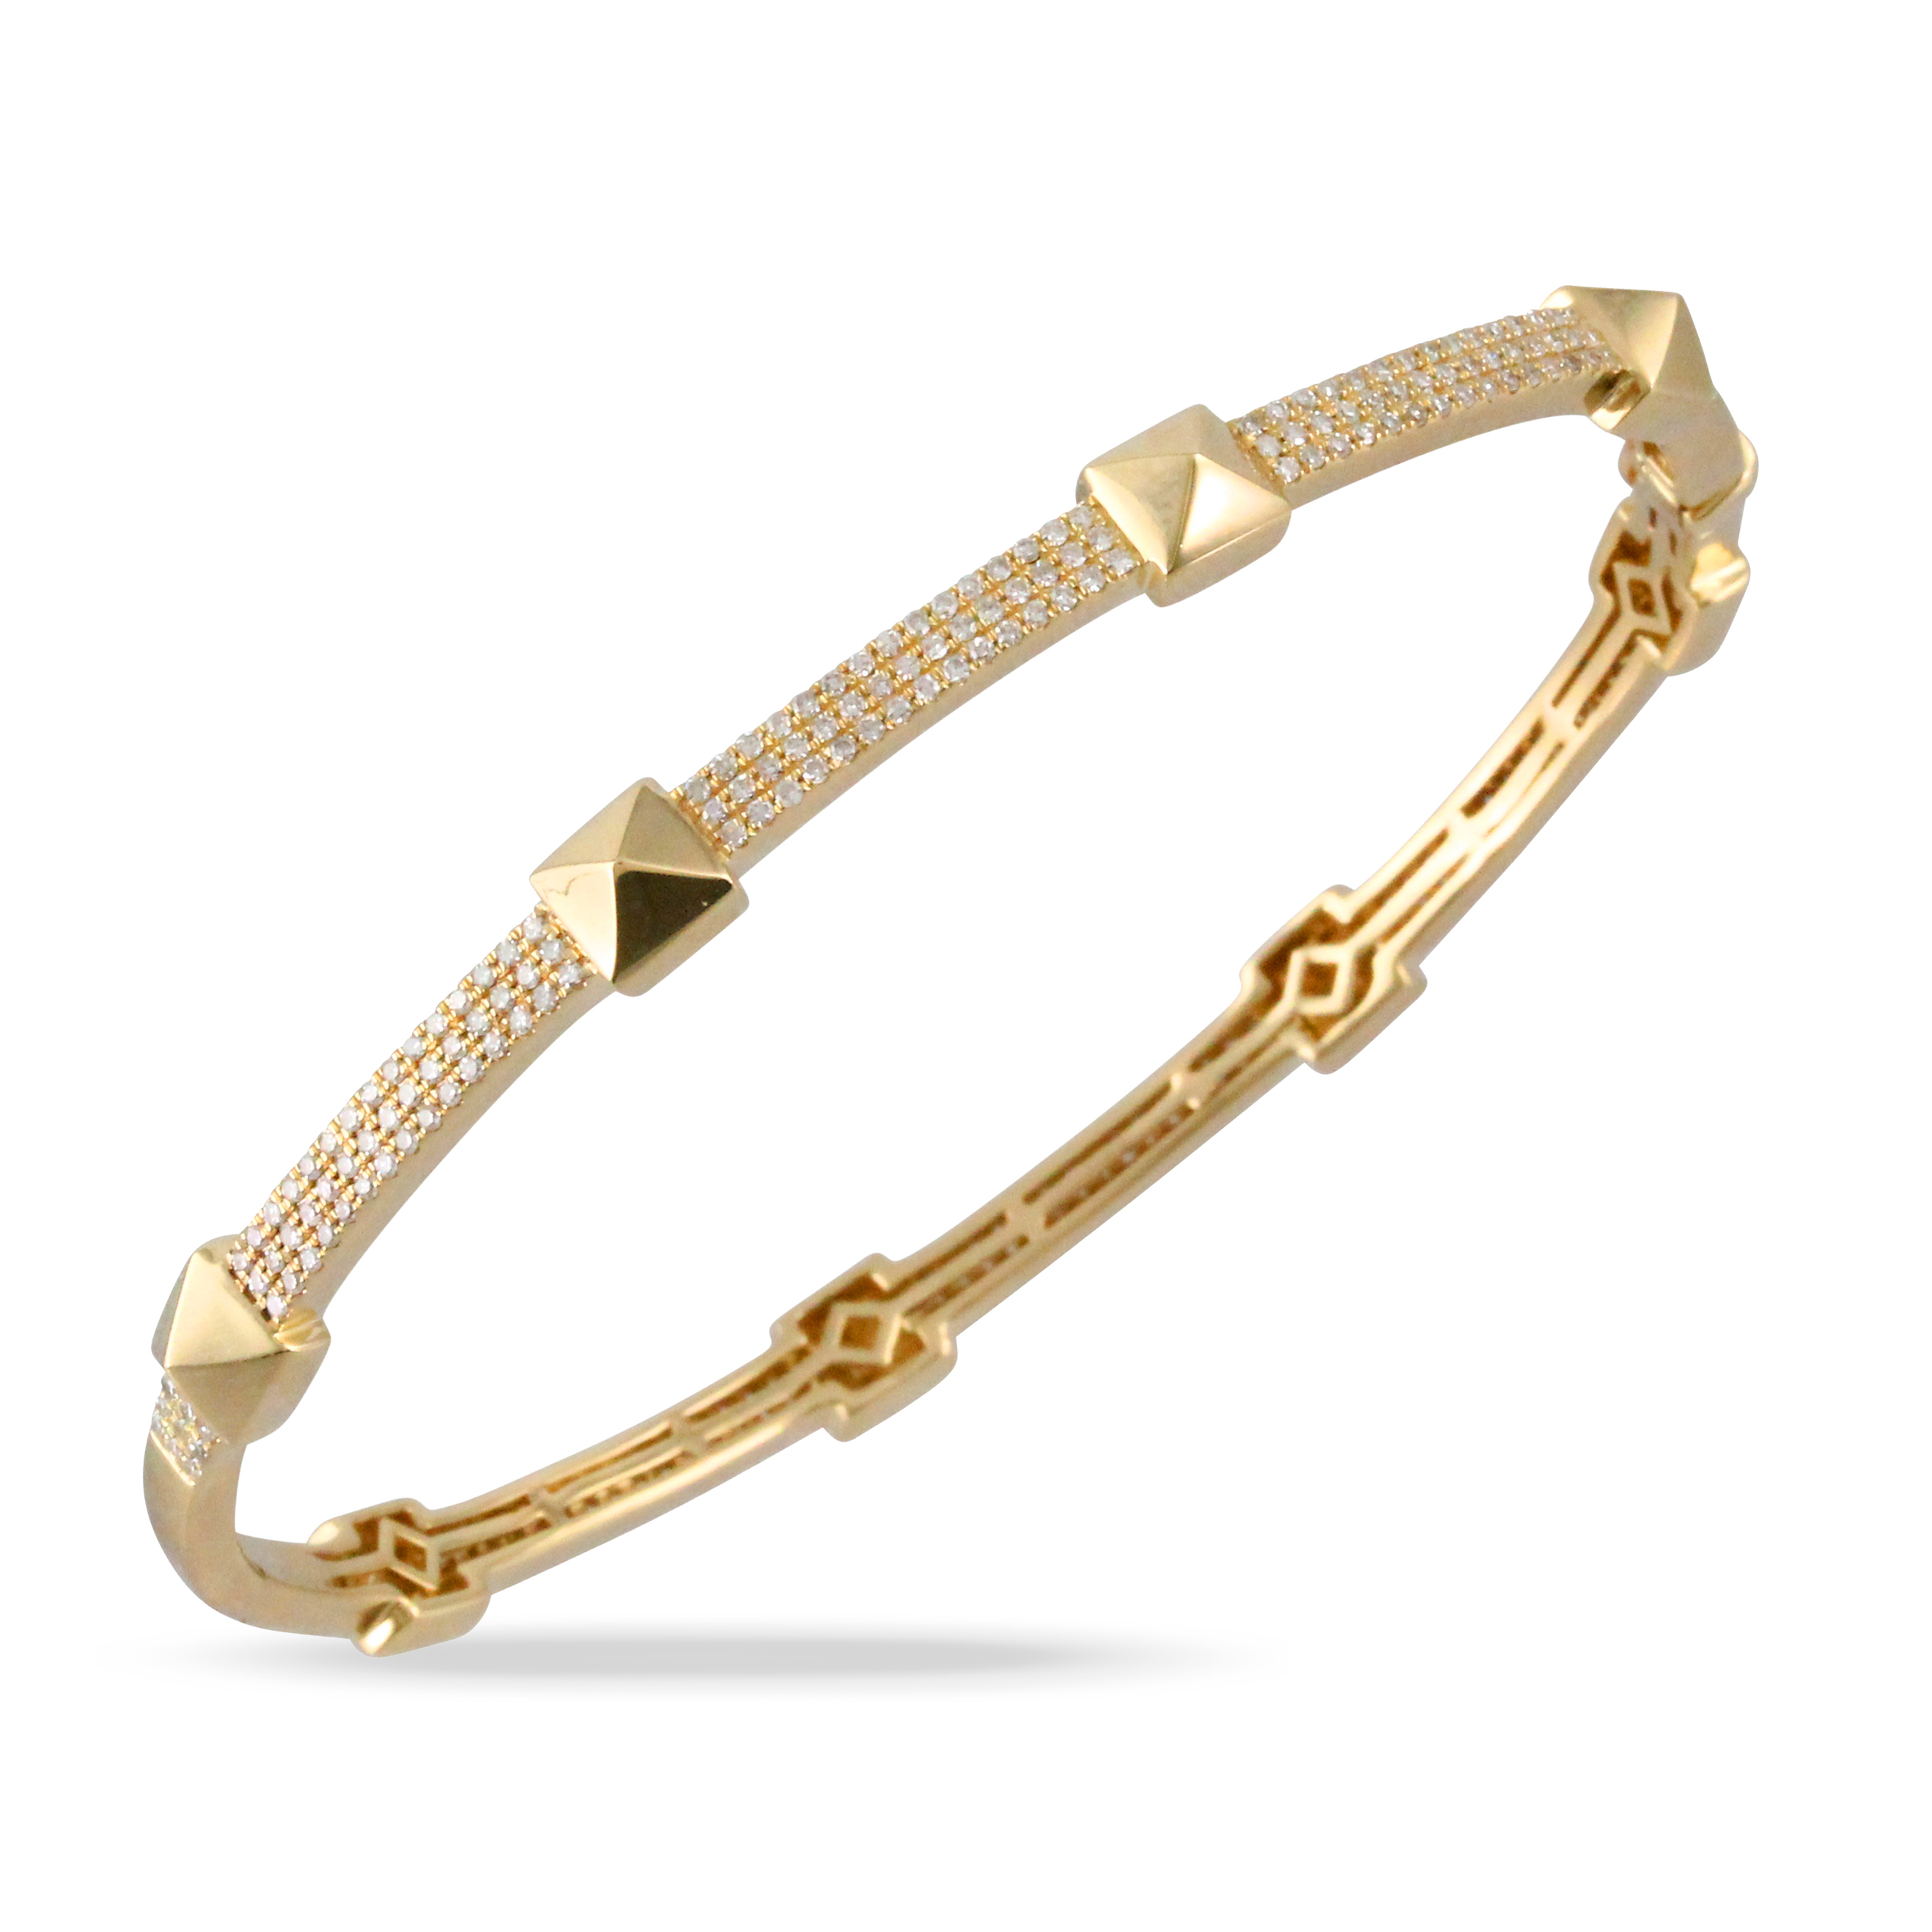 14K Yellow Gold Diamond Bangle Bracelet - 14K Yellow Gold Diamond Bangle